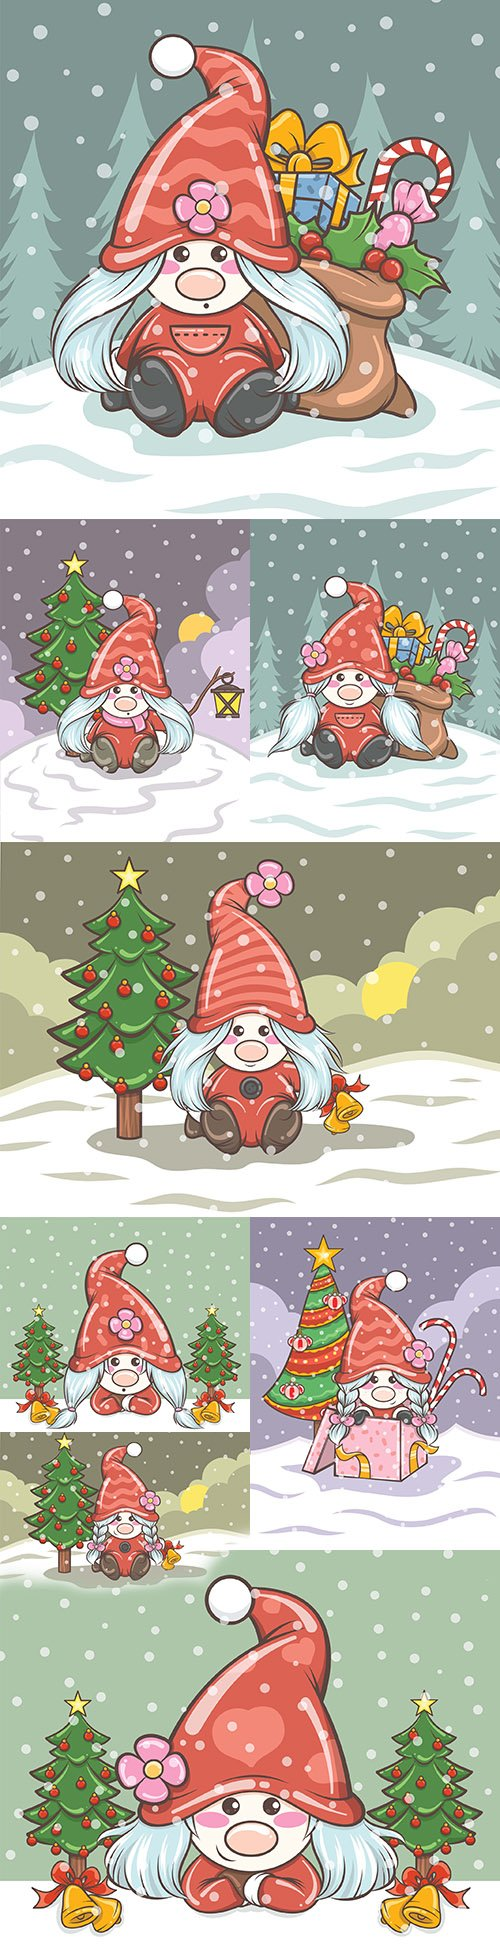 Sweet girl gnome with gifts Christmas illustration